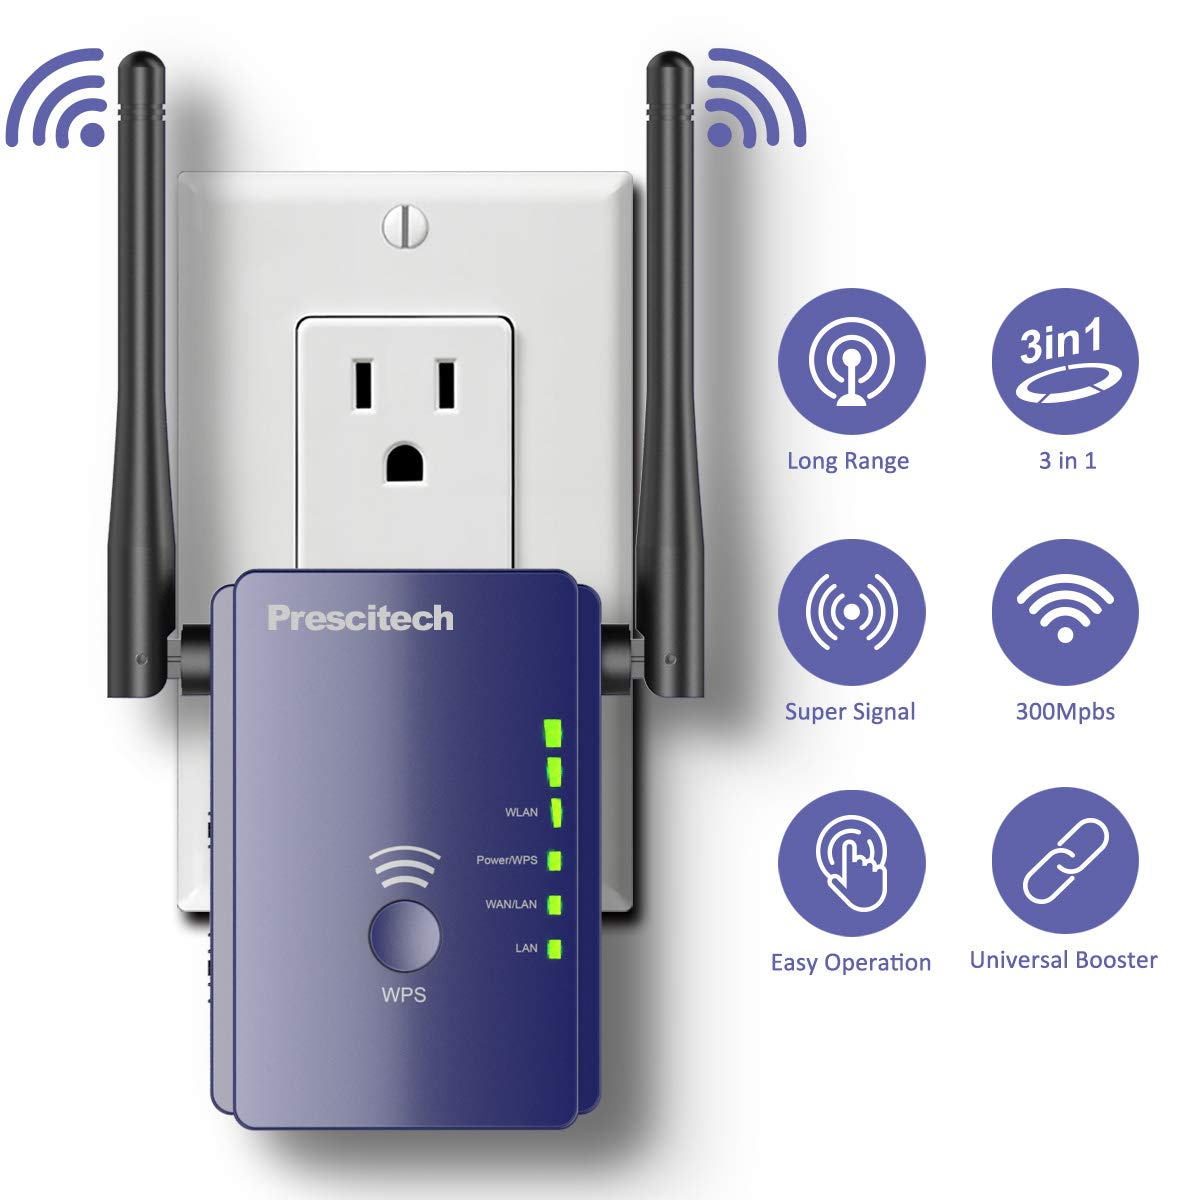 WiFi Range Extender -300Mpbs WiFi Repeater with WPS-2.4GHz Wireless Internet Signal Booster with High Gain Dual Antennas, Access Point/Repeater/Router Mode, 2 Ethernet Ports for Covering Smart Home by Huryfox